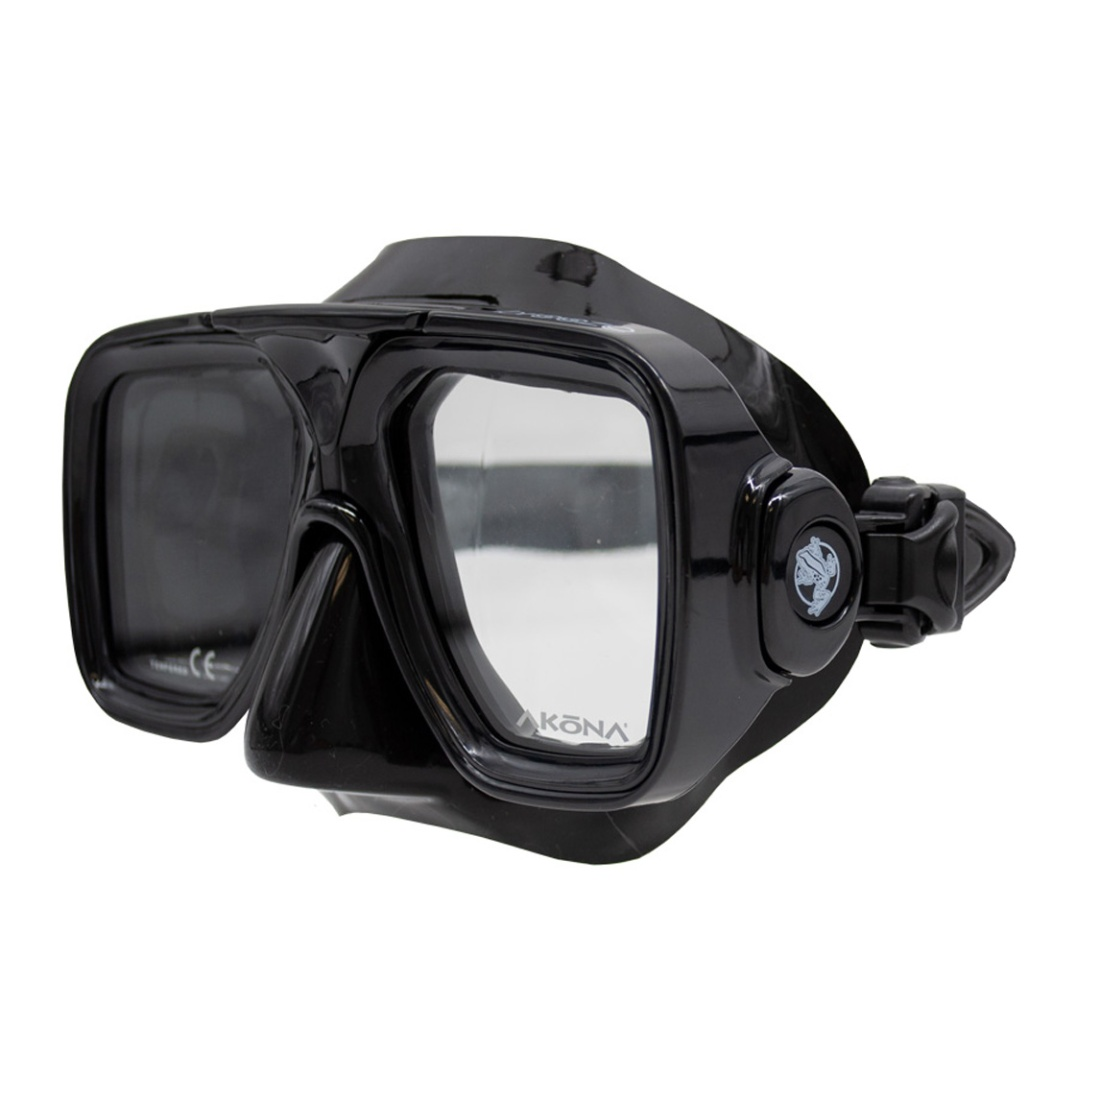 BREEZE MASK - AKM280 BS Left